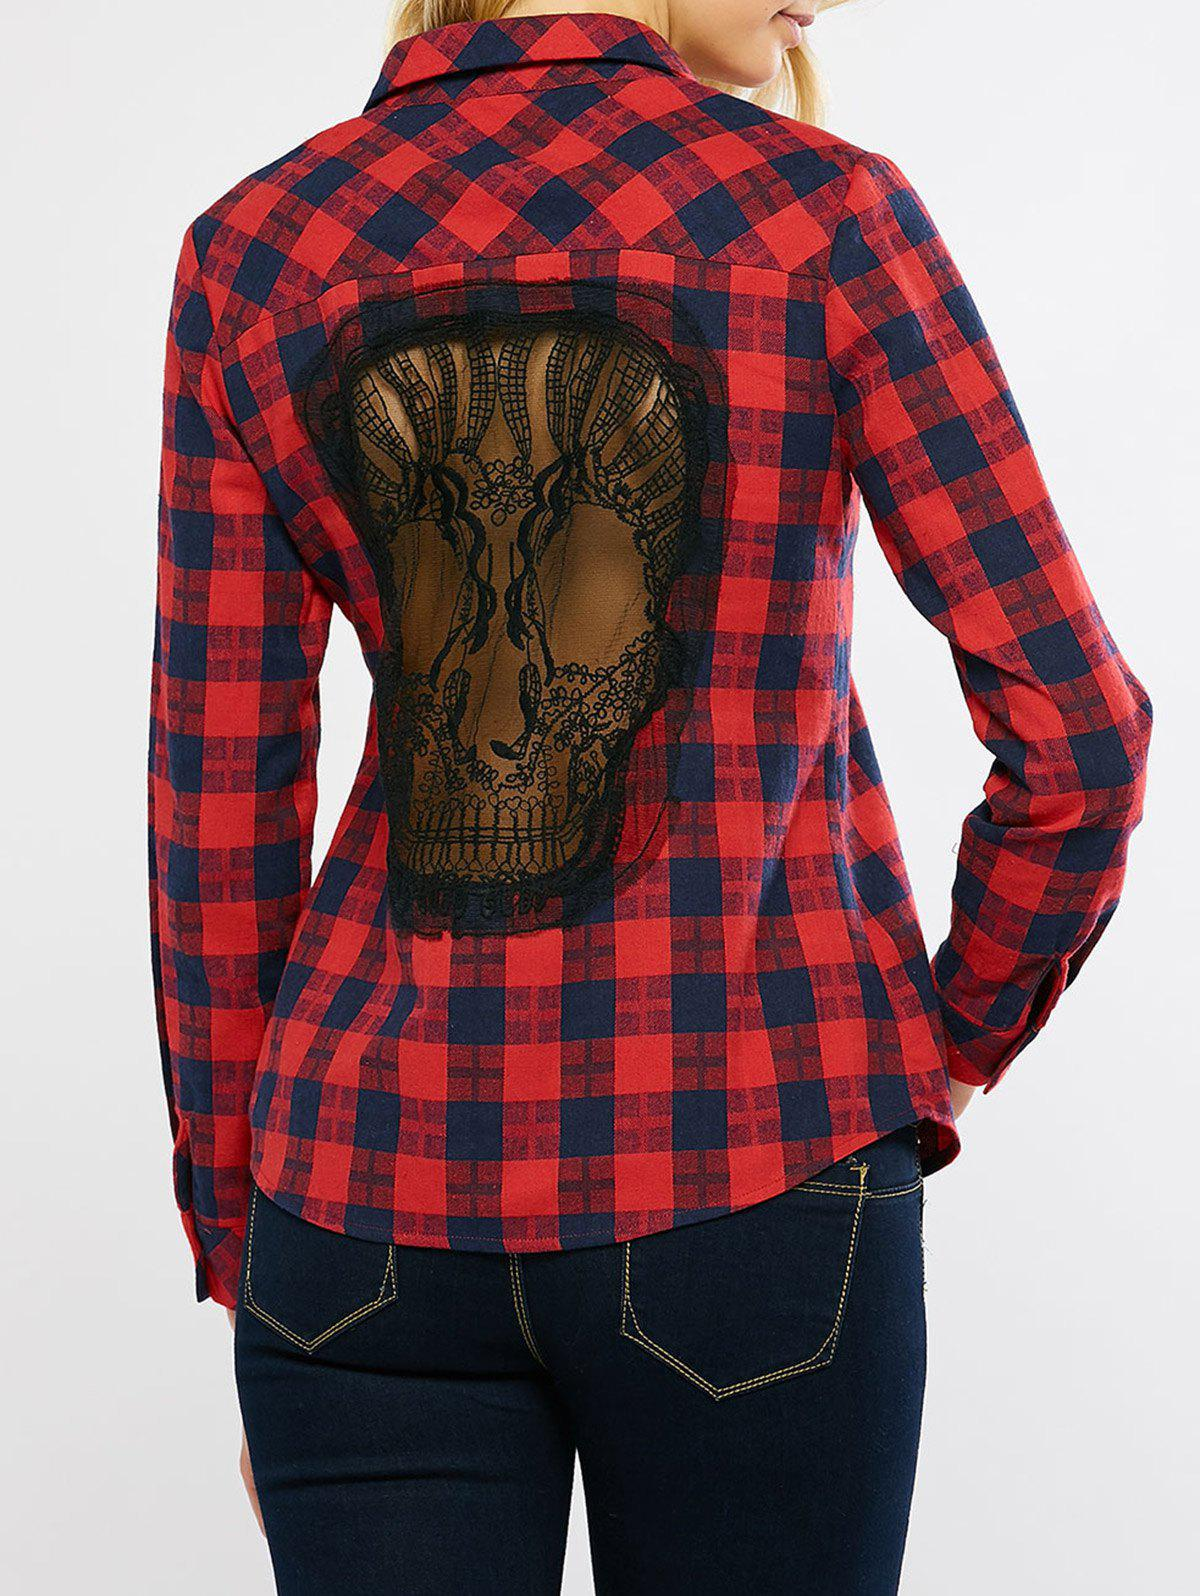 Plaid Graphic Long Sleeve Lace Panel Skull Cutout Shirt lace panel graphic slub t shirt